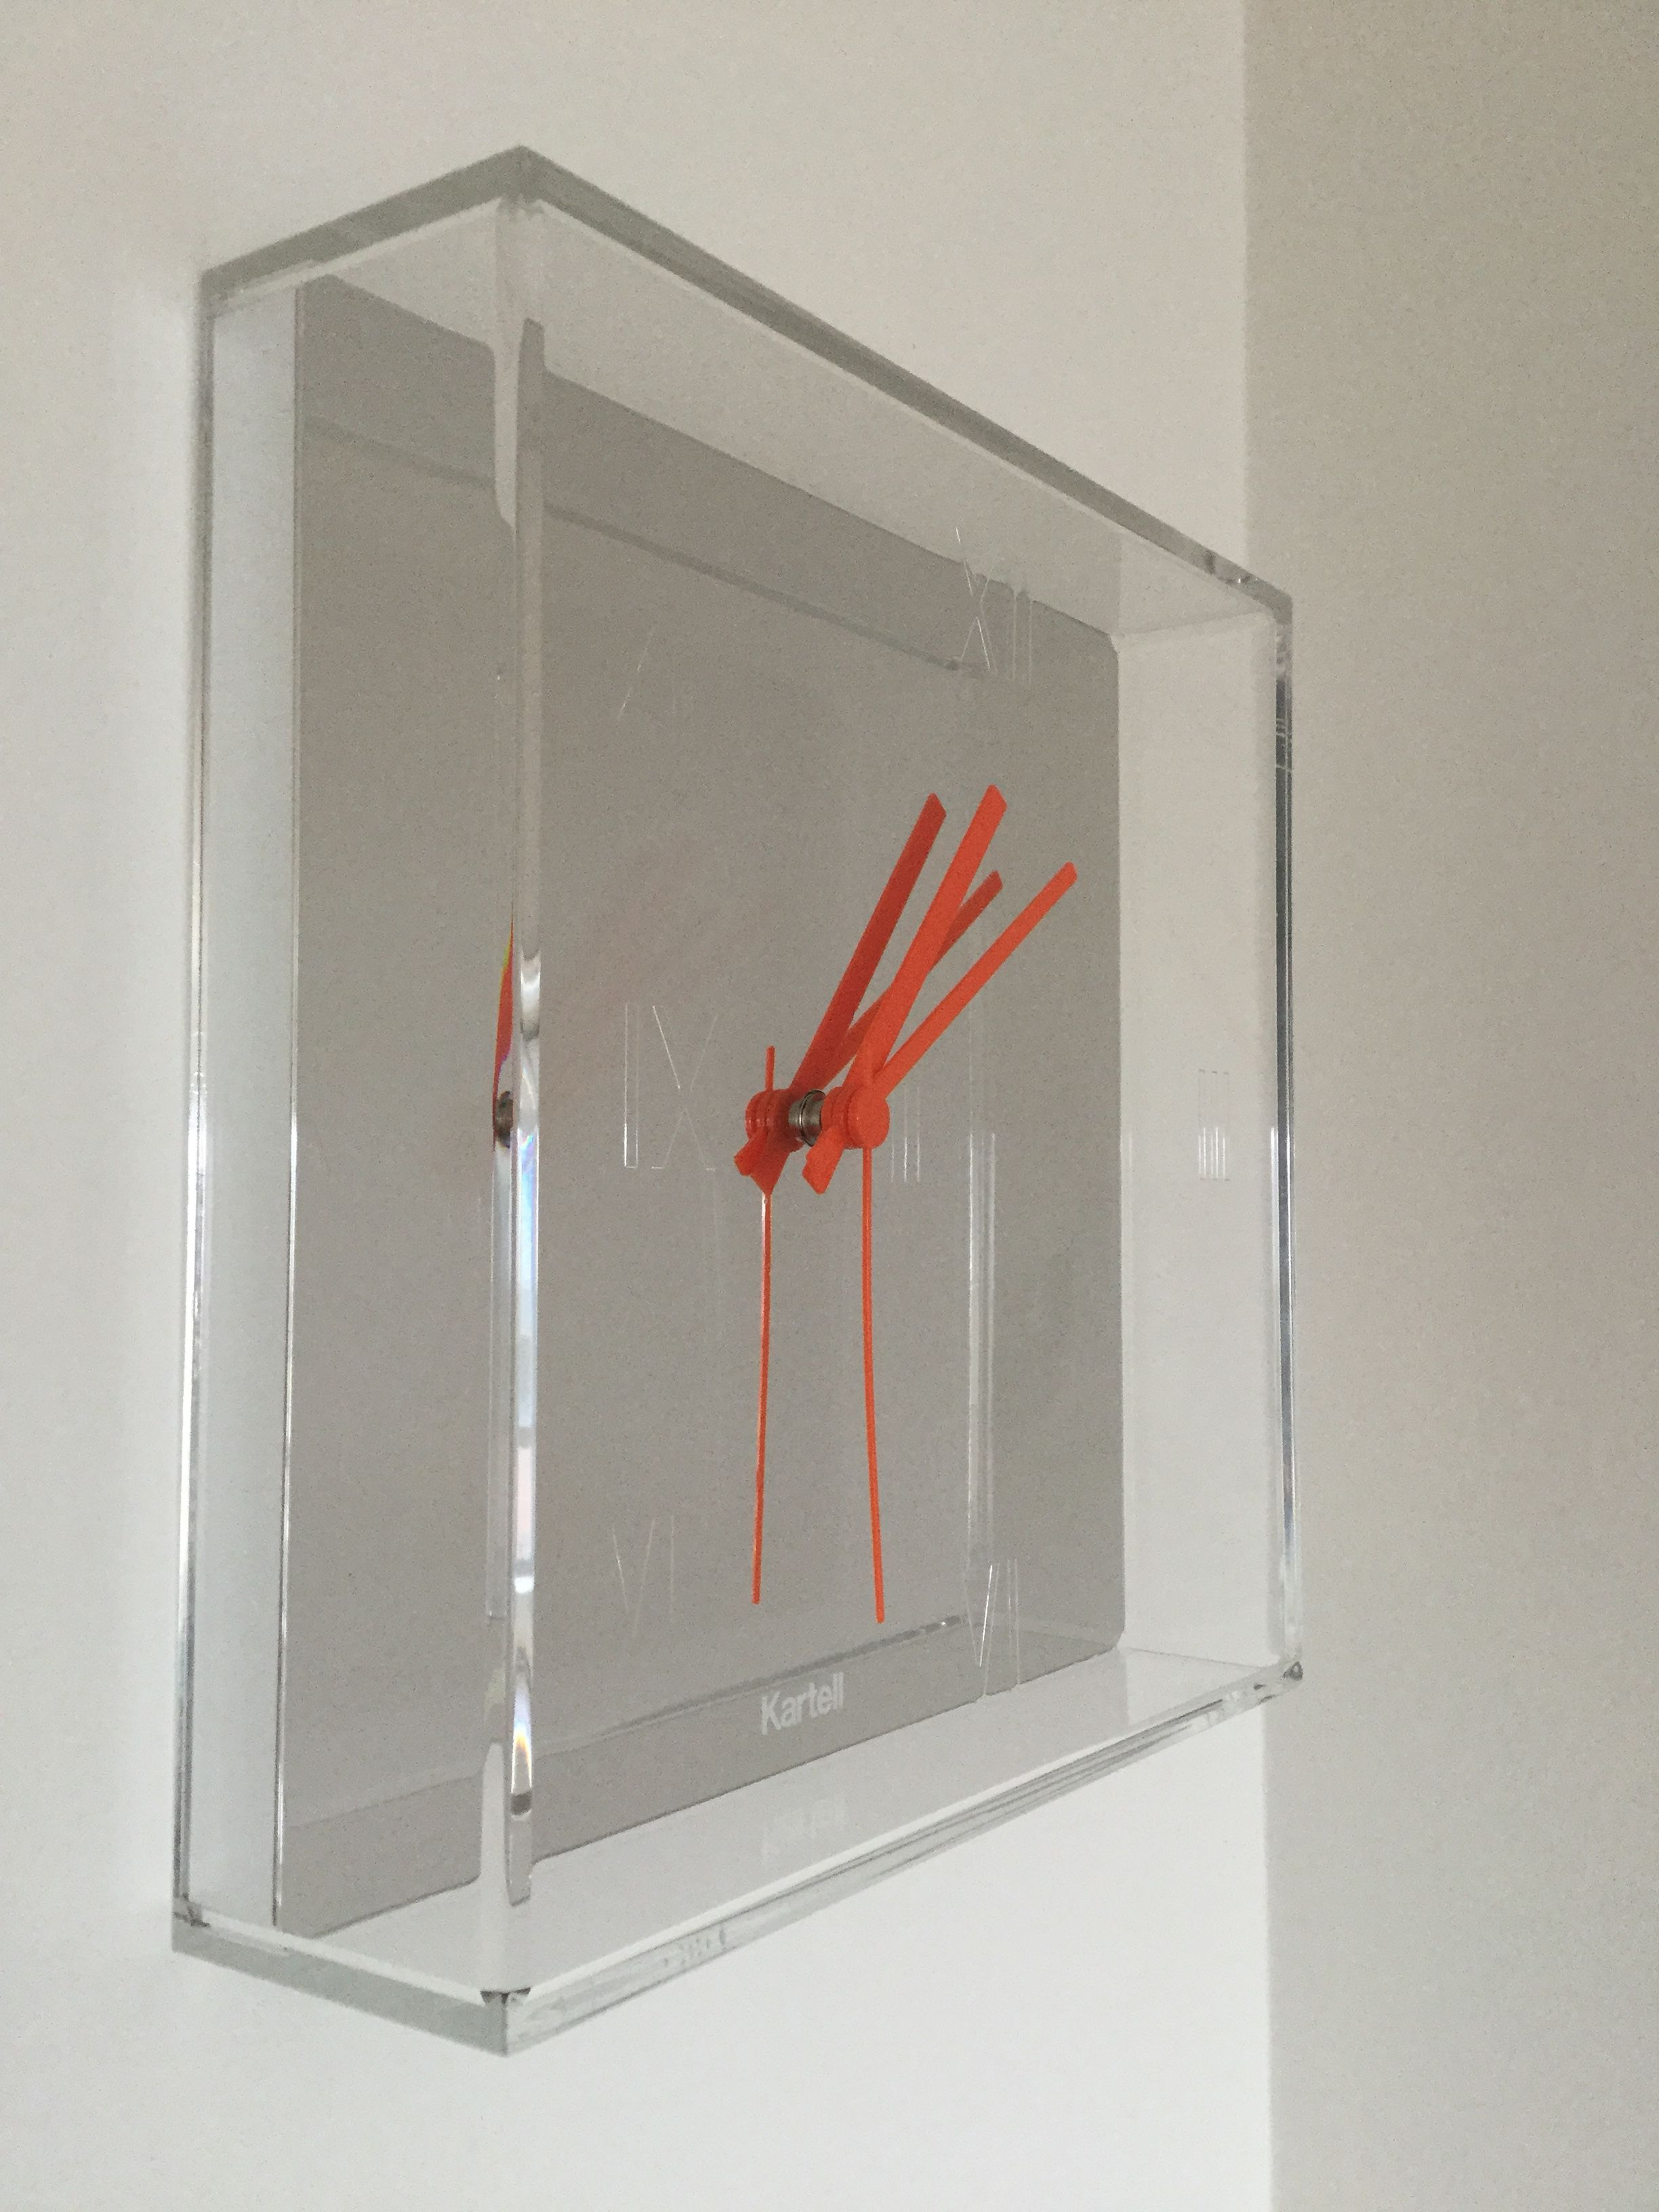 File kartell tic tac wall clock by philippe starck jpg for Philippe starck work